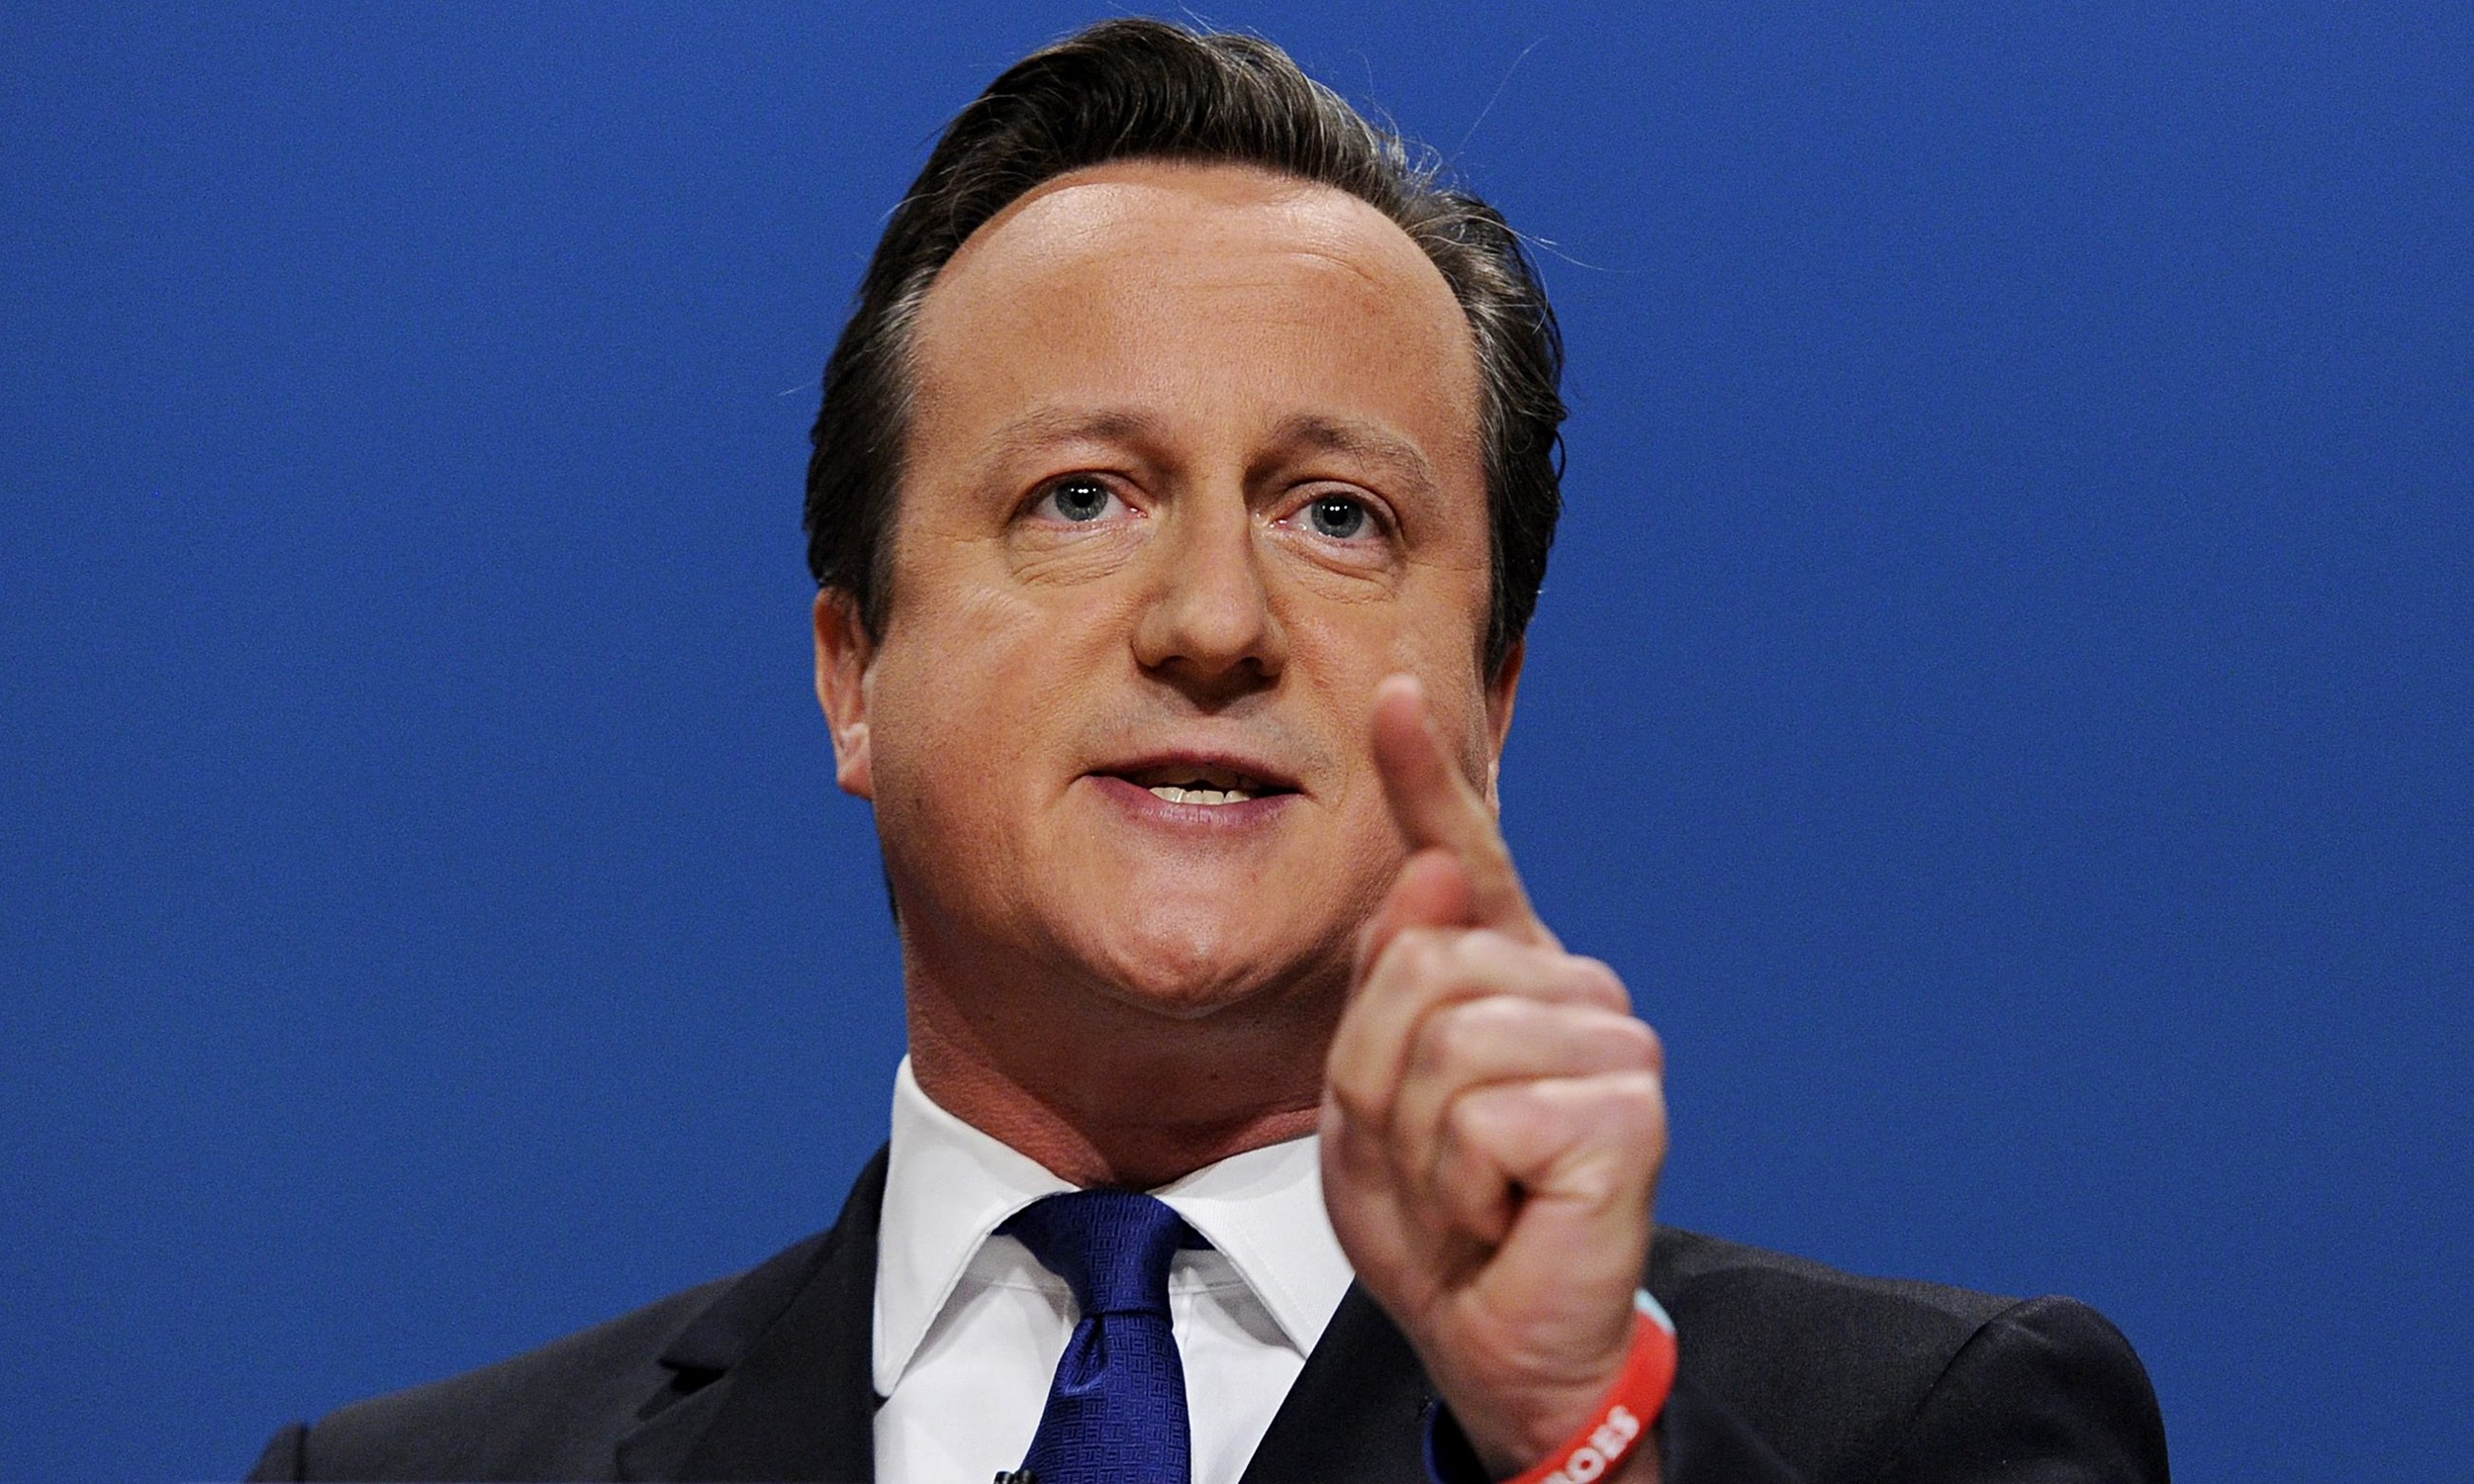 David Cameron Source: http://www.theguardian.com/commentisfree/2014/oct/01/david-cameron-election-starting-gun-speech